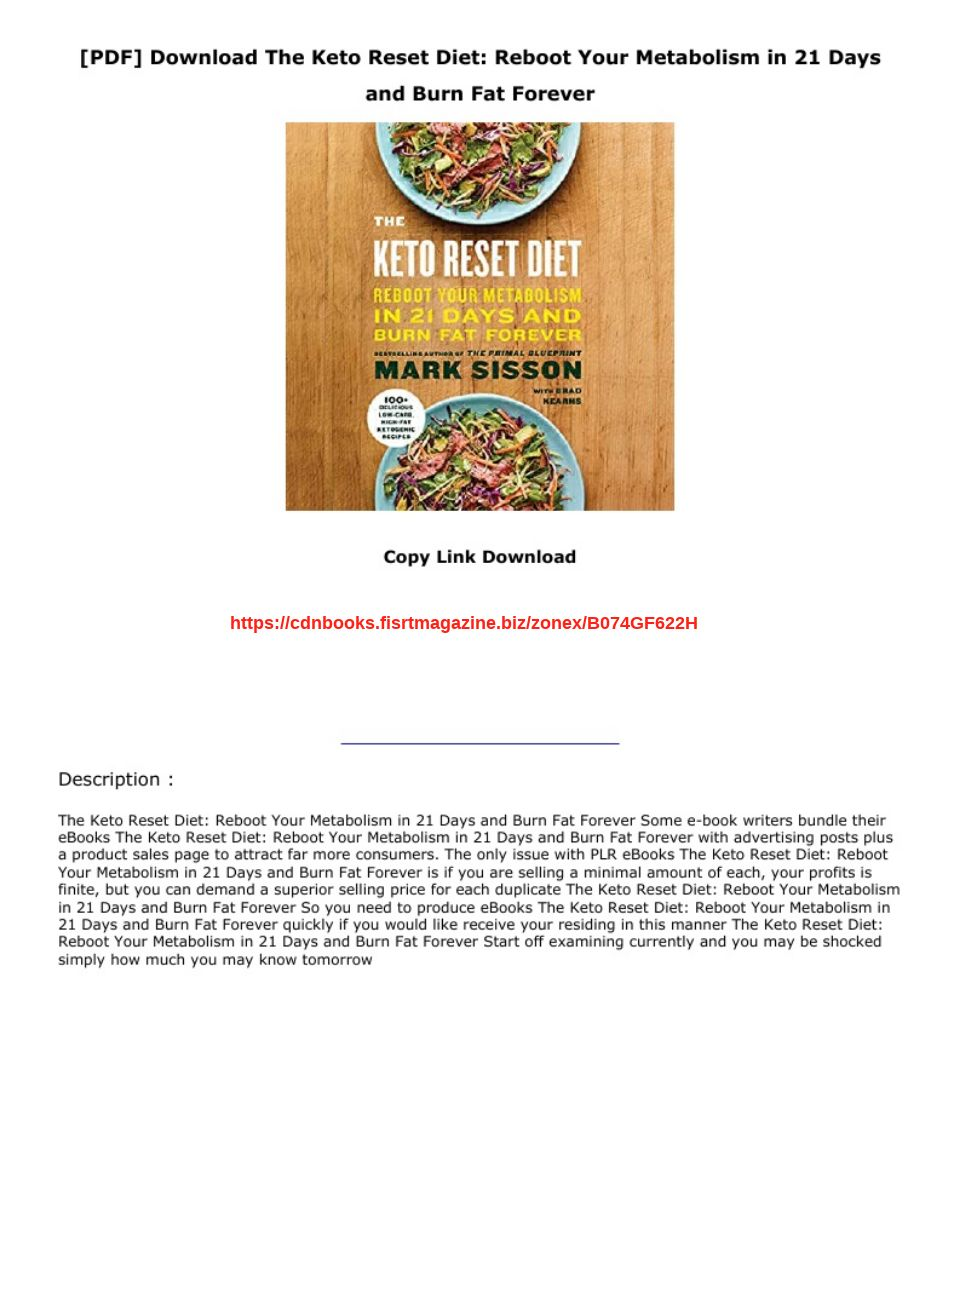 The Keto Reset Diet Pdf